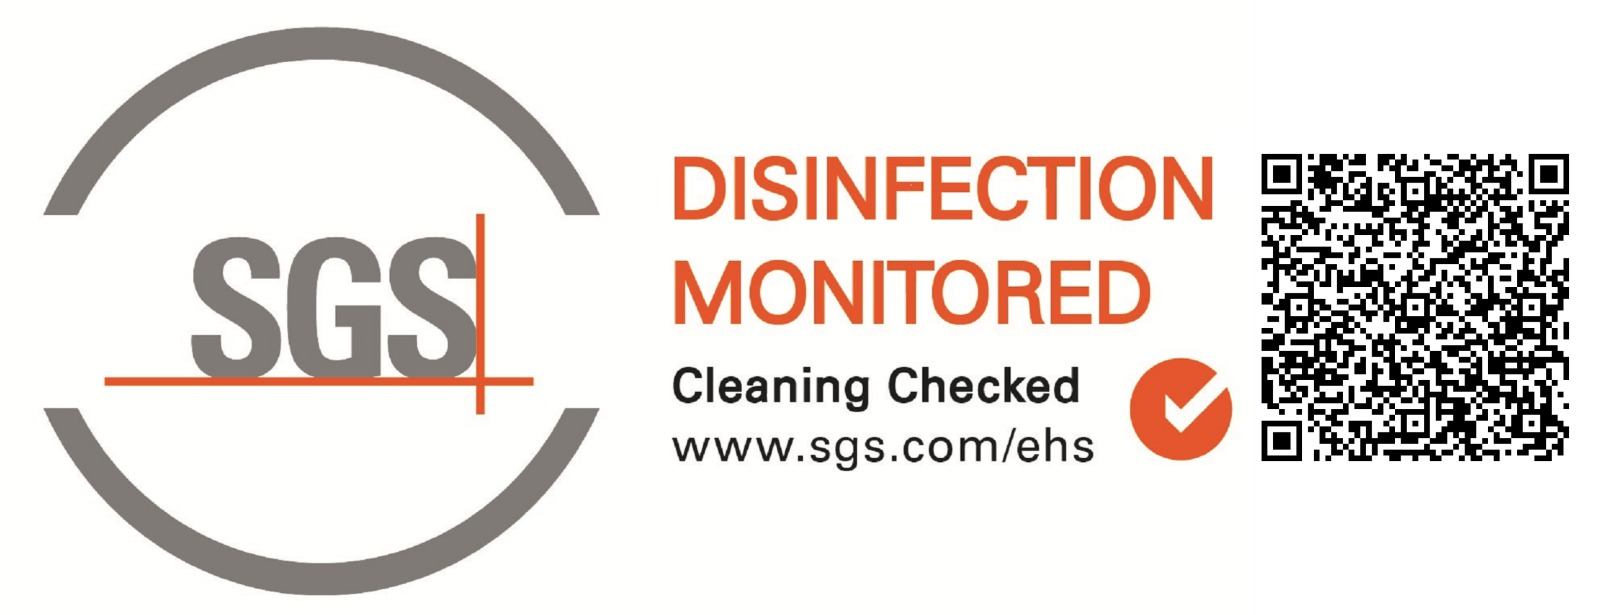 Disinfection Monitored SGS